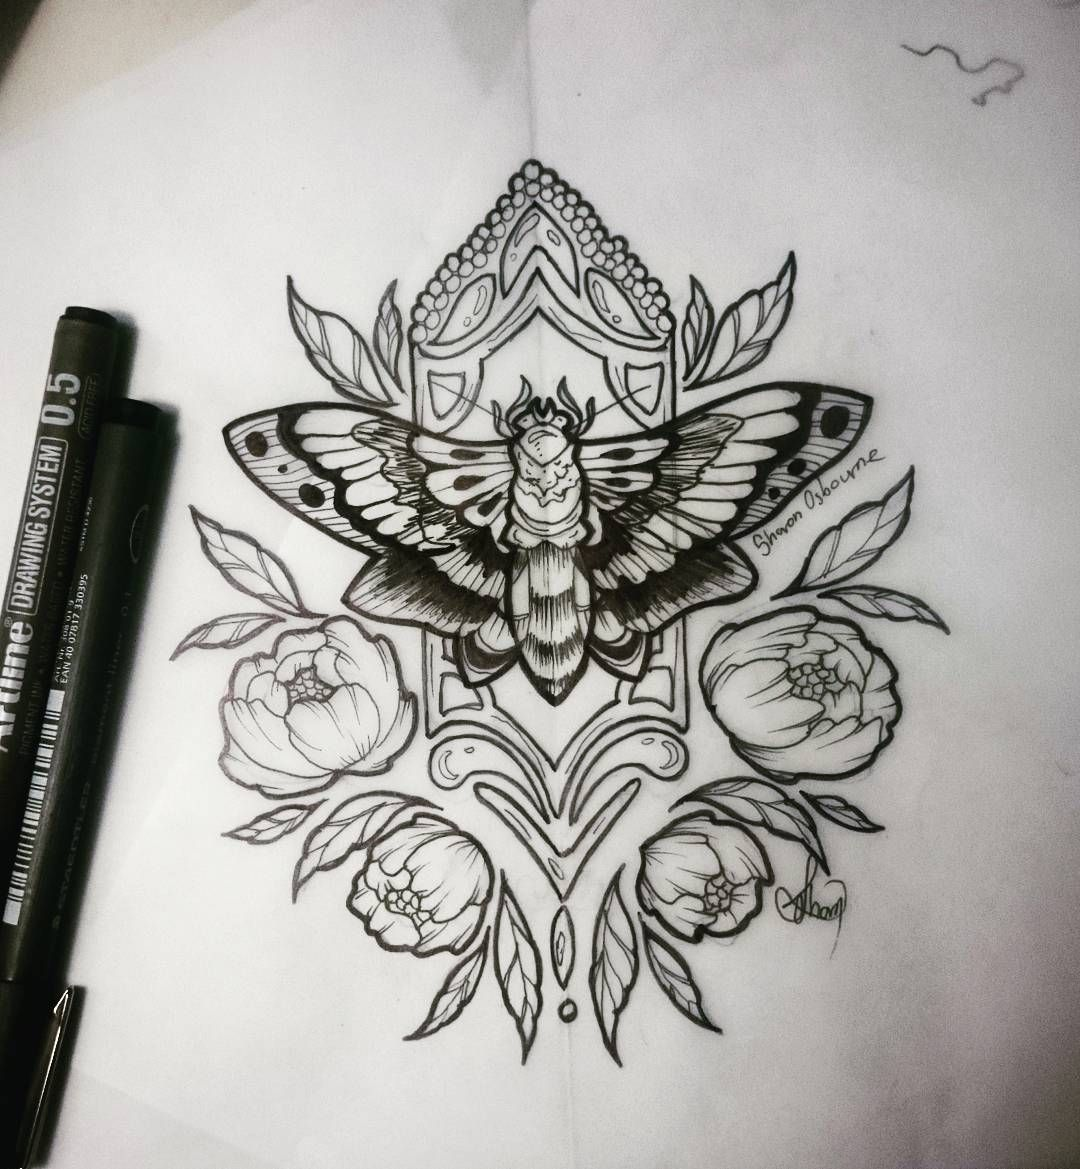 Sketch Polilla Tattoo Tatuaje Sketch Sketchtattoo Tattoodesign Polillatattoo Polilla Buterflytattoo Flowertattoo Peonietattoo Girltat Insect Tattoo Tattoo Designs Moth Tattoo